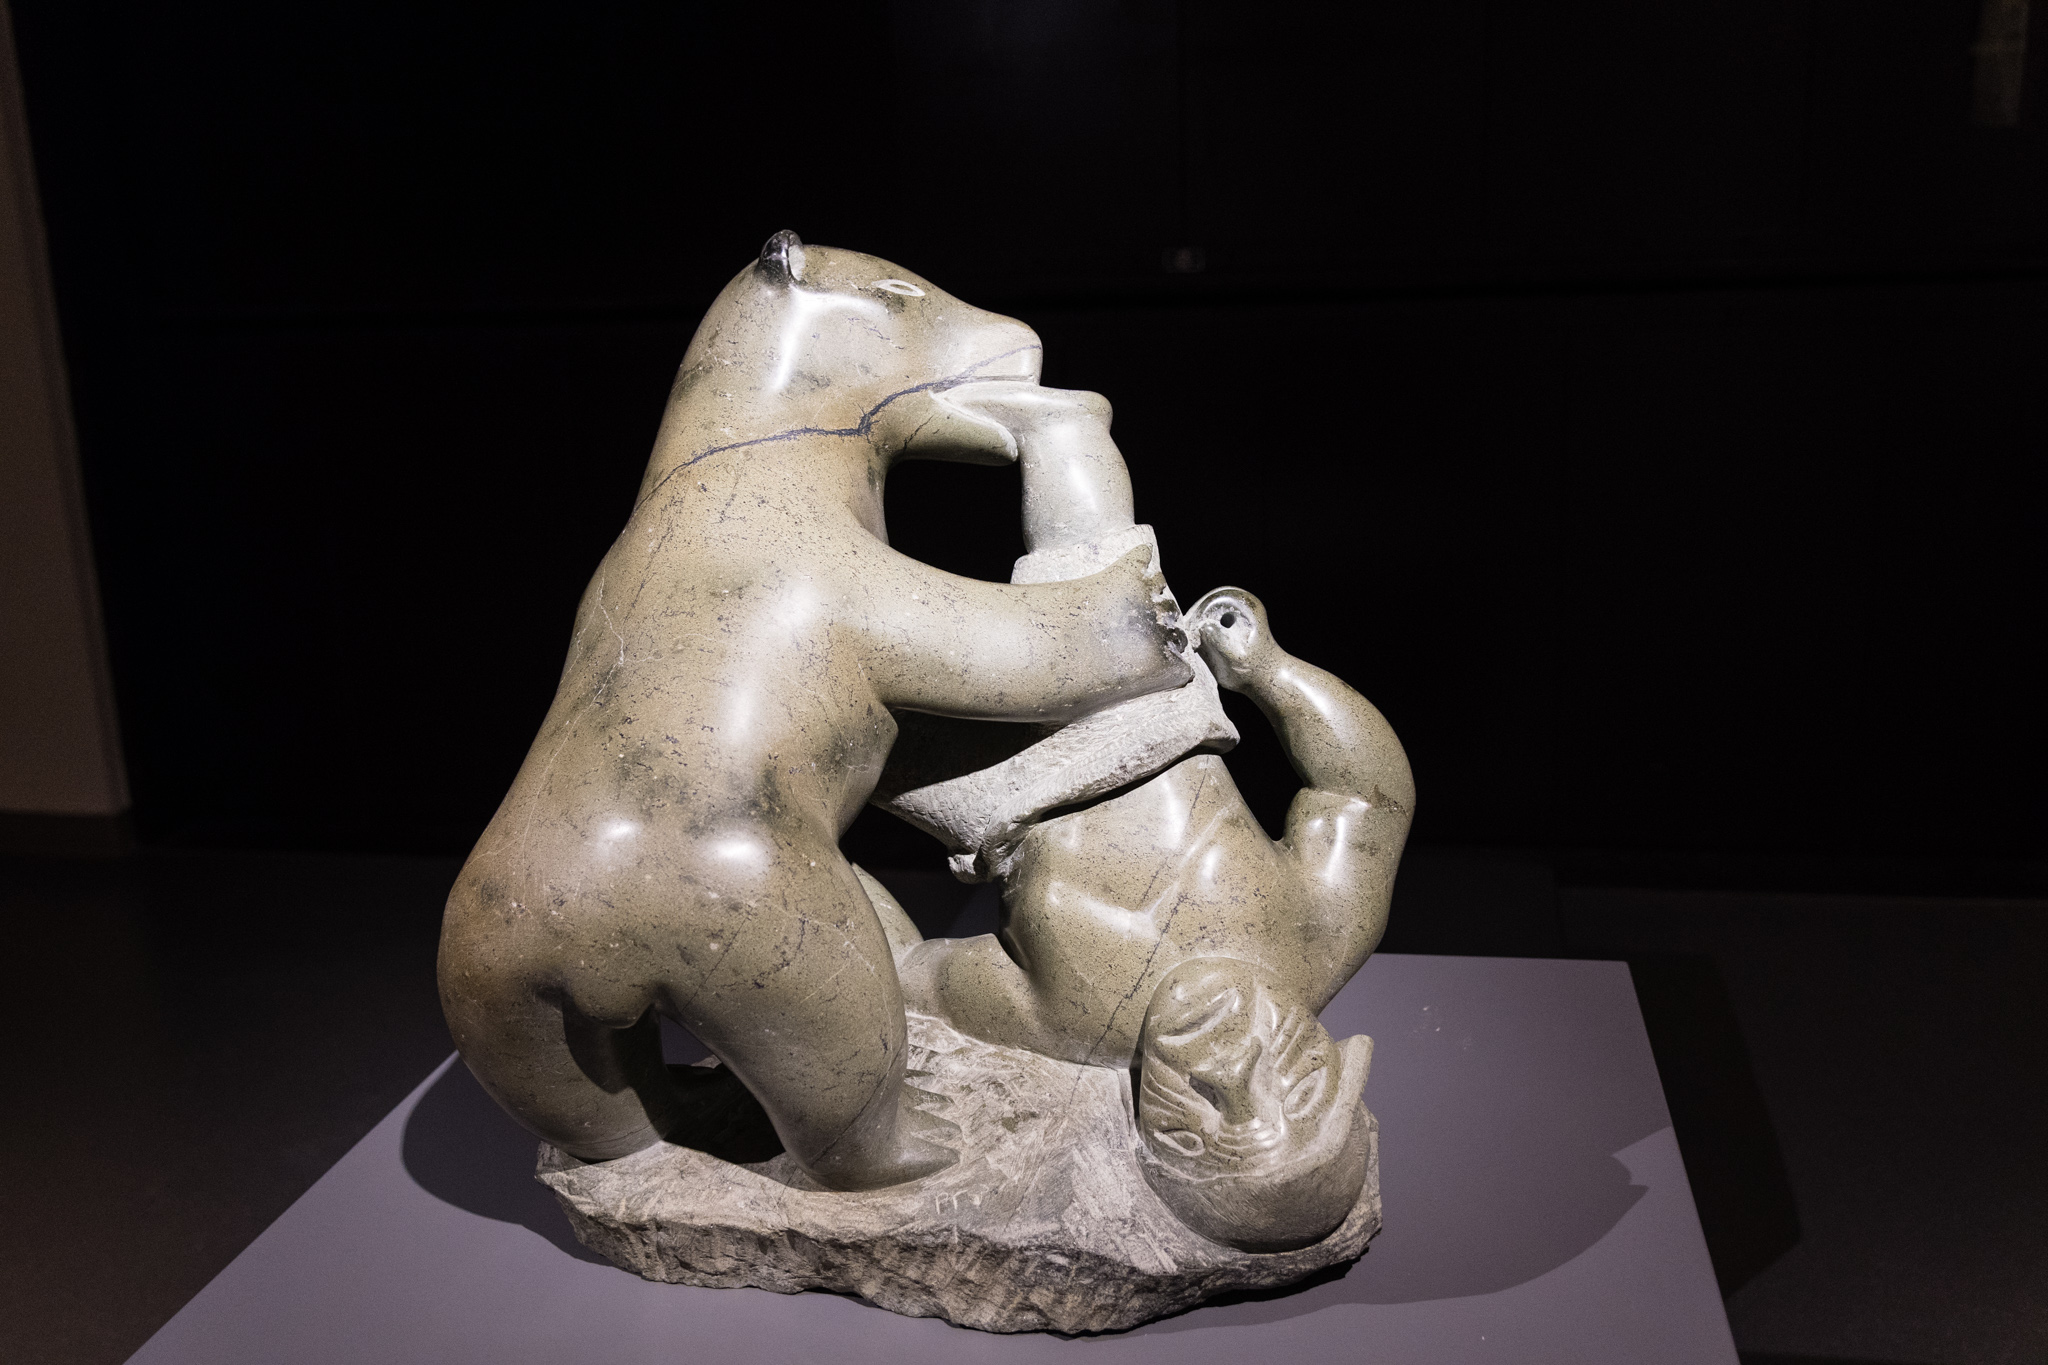 Now entering an local art gallery, exhibiting Inuit art. Out of all the major cities in Canada, Winnipeg seems to have the closest connection to great north.